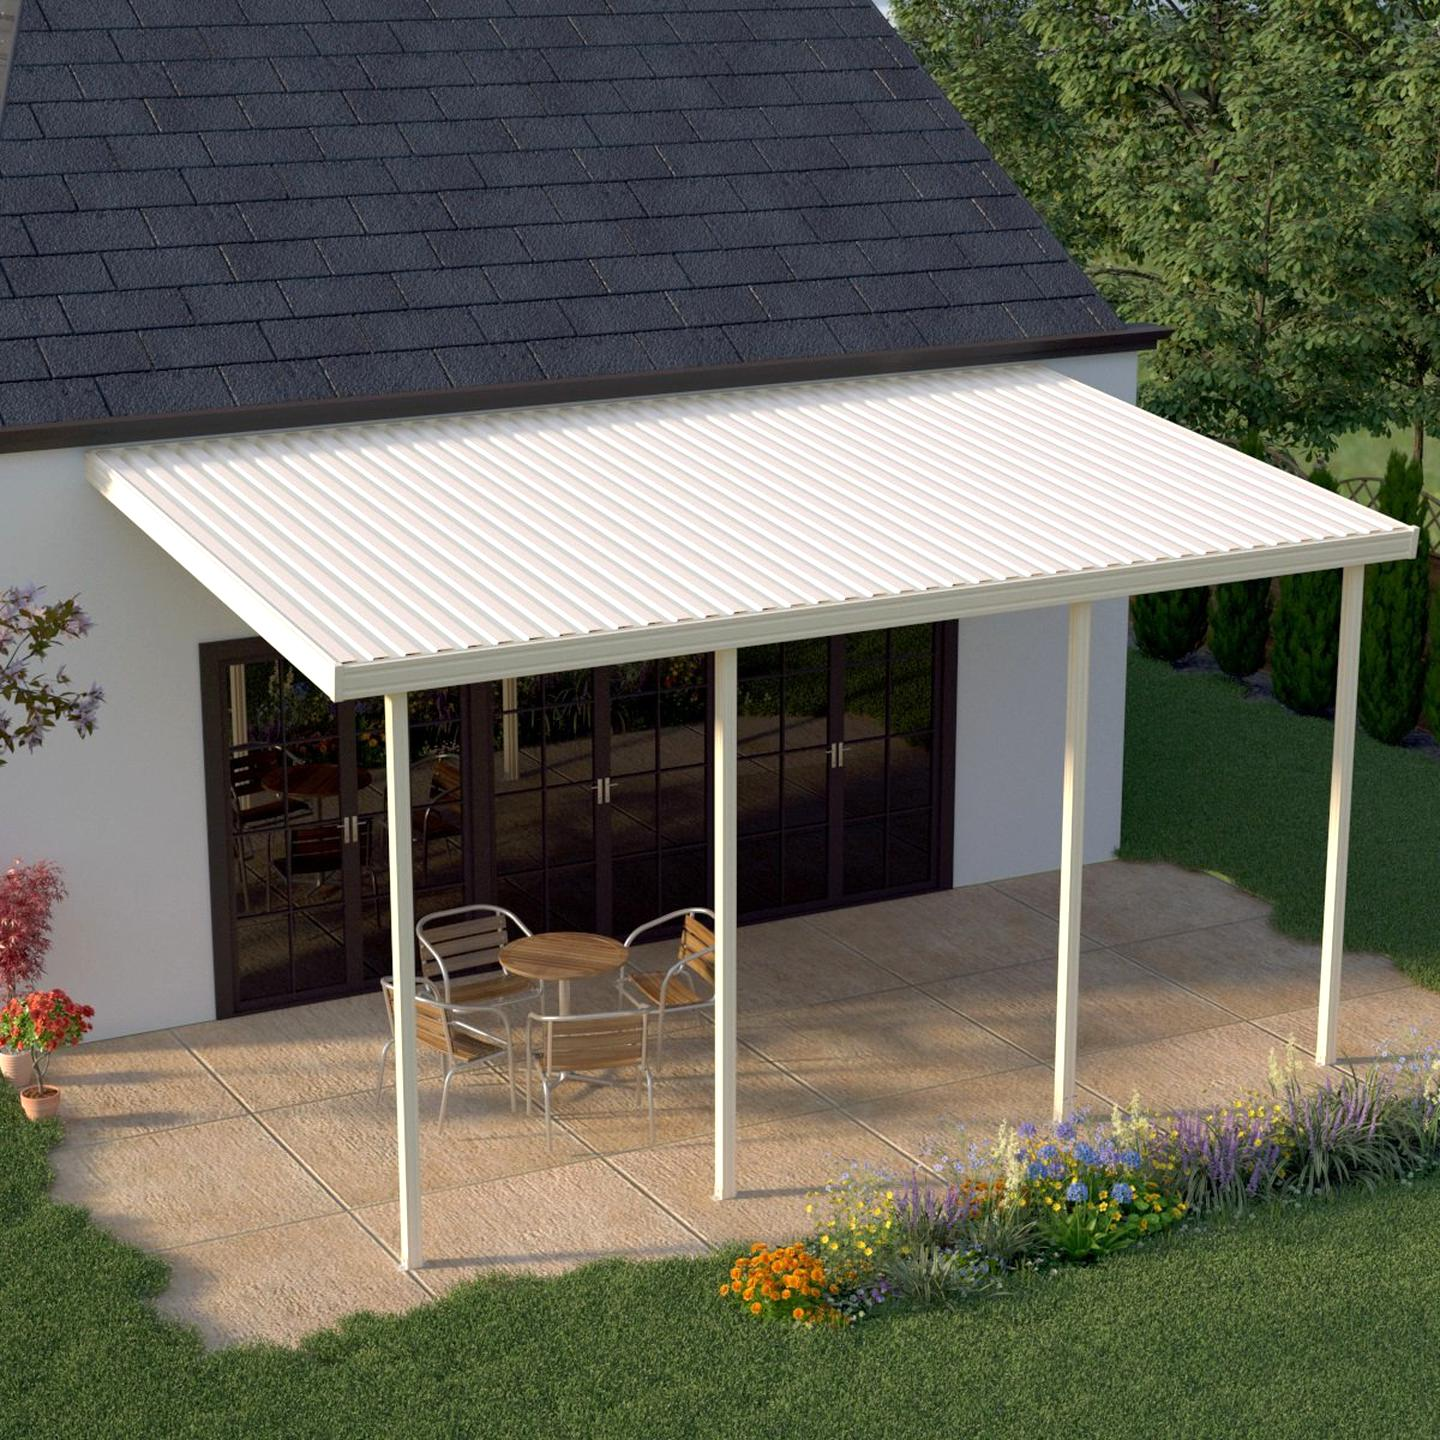 Patio Awning for sale in UK   62 used Patio Awnings